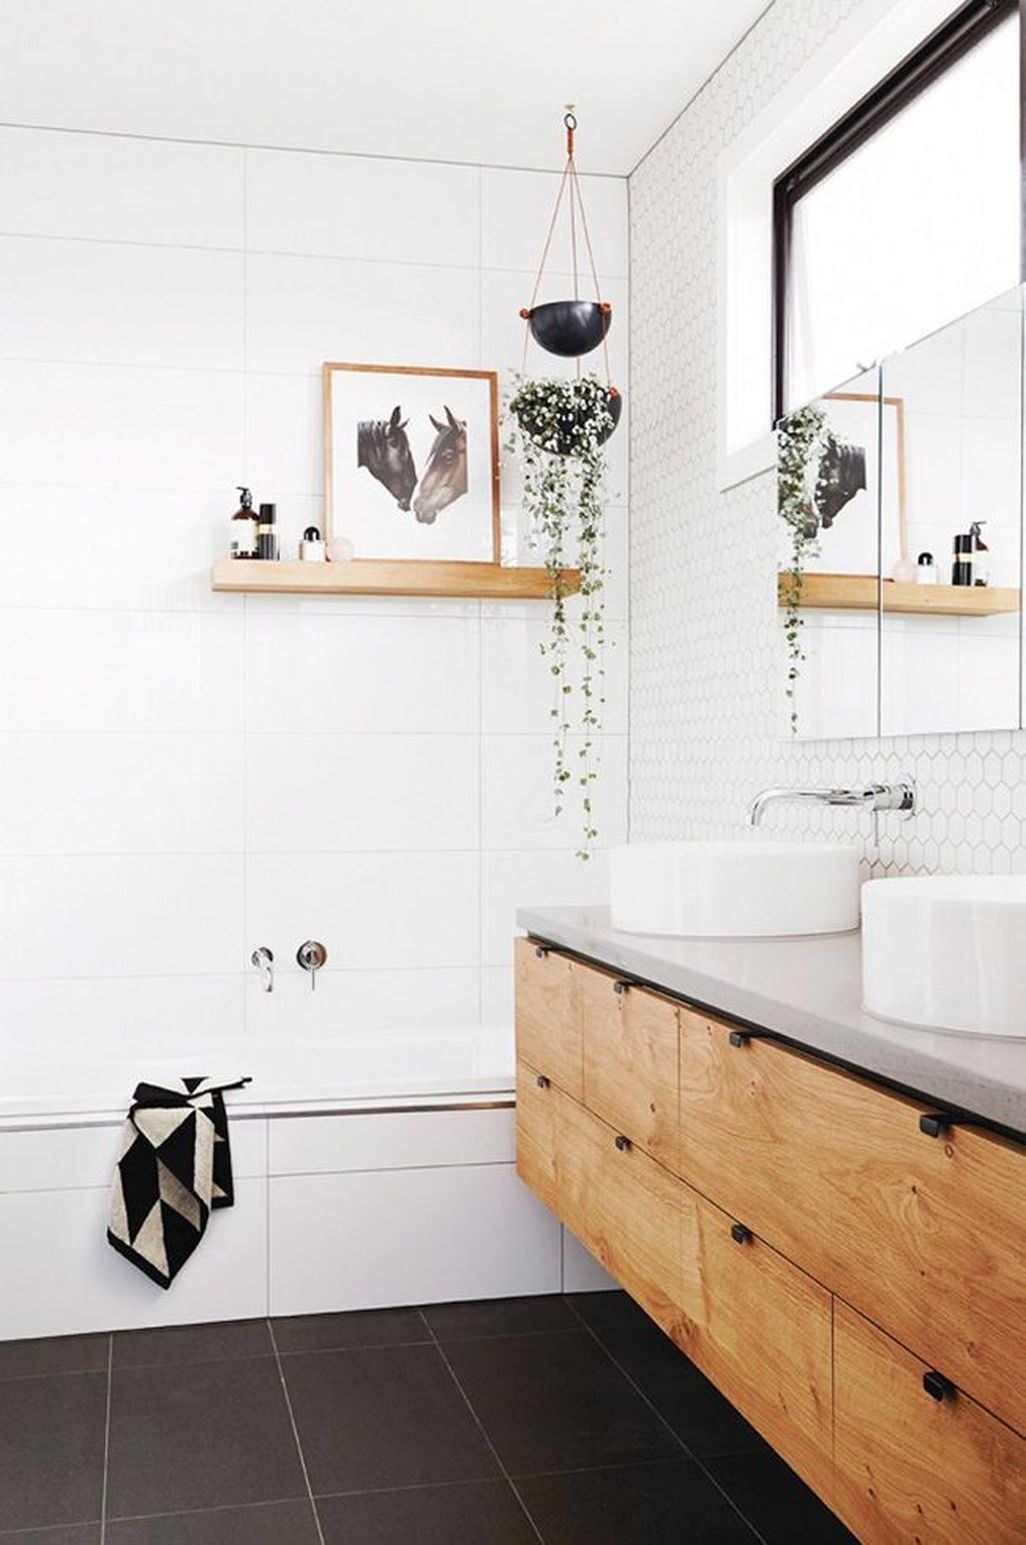 45 Awesome Diy Bathroom For This Summer Ideas - TREND4HOMY